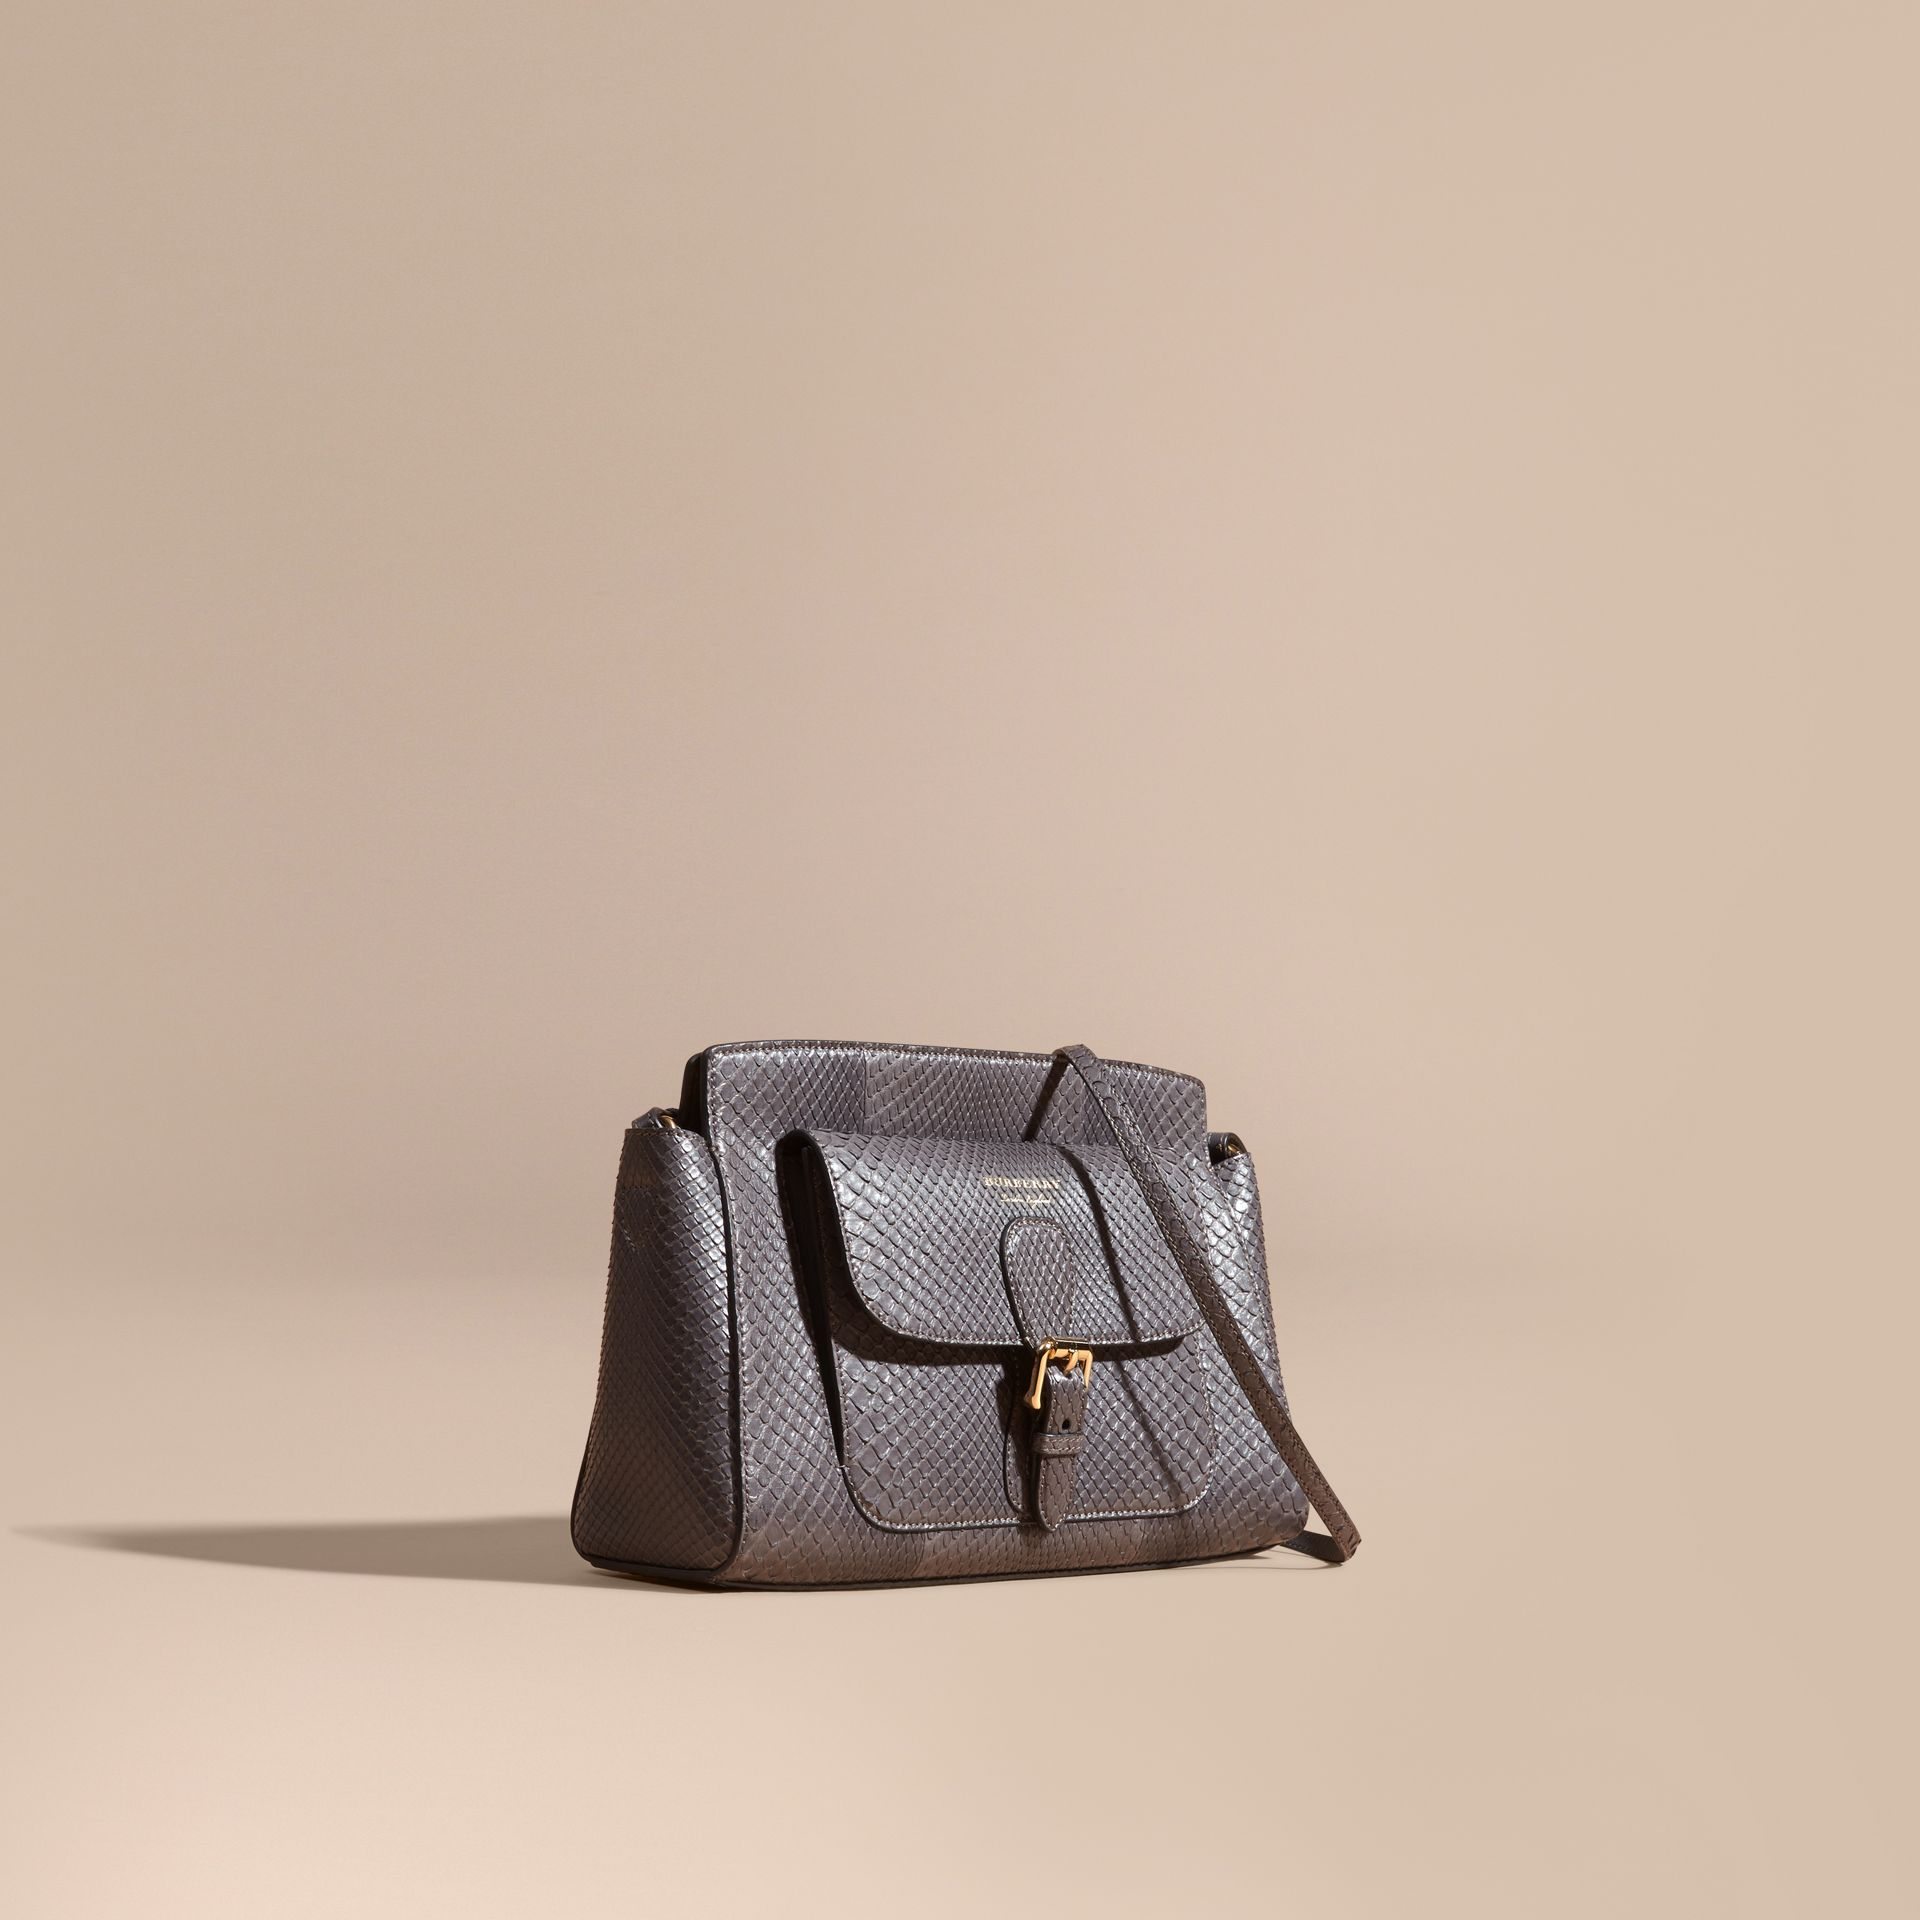 Sepia grey The Saddle Clutch in Python - gallery image 1